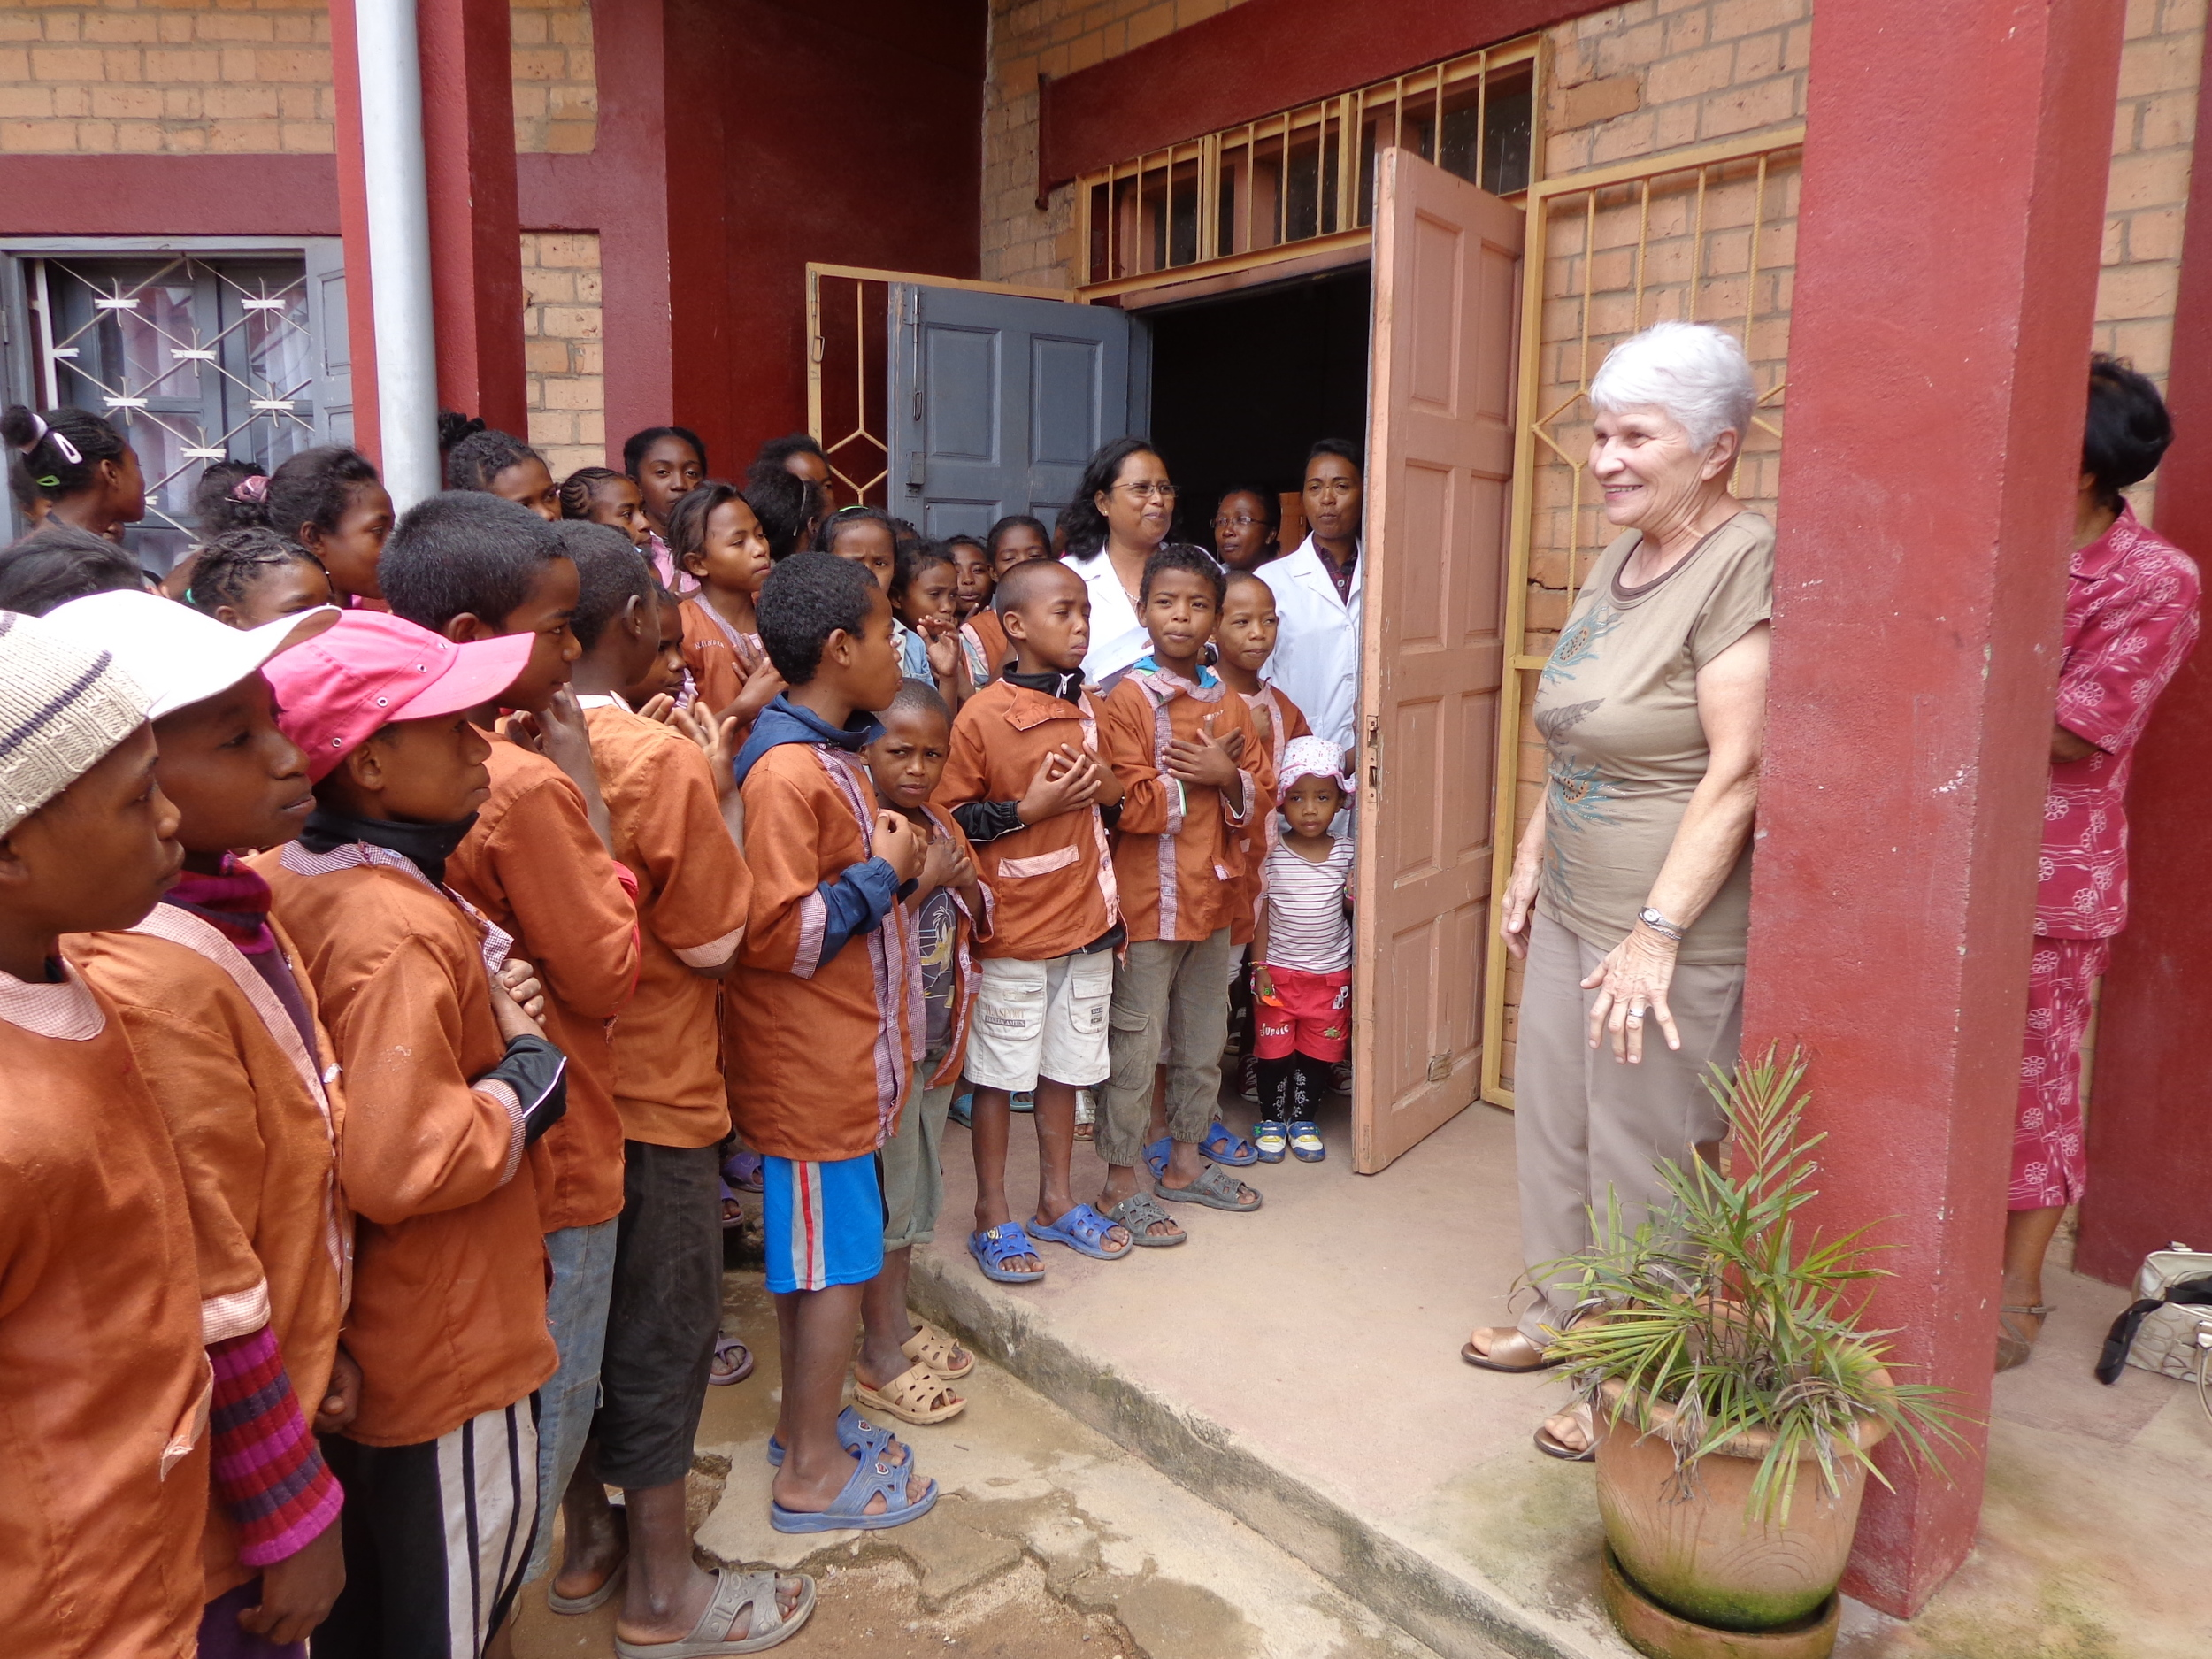 """AKANY TAFITA is an """"inner city centre for children and youth"""".  86 children come daily to this  elementary schoo l. When founder and missionary  Mary Sherwood  went to visit during her recent trip to Madagascar, the children welcomed her with singing and little welcome speeches!! Mary is from Carleton Place."""